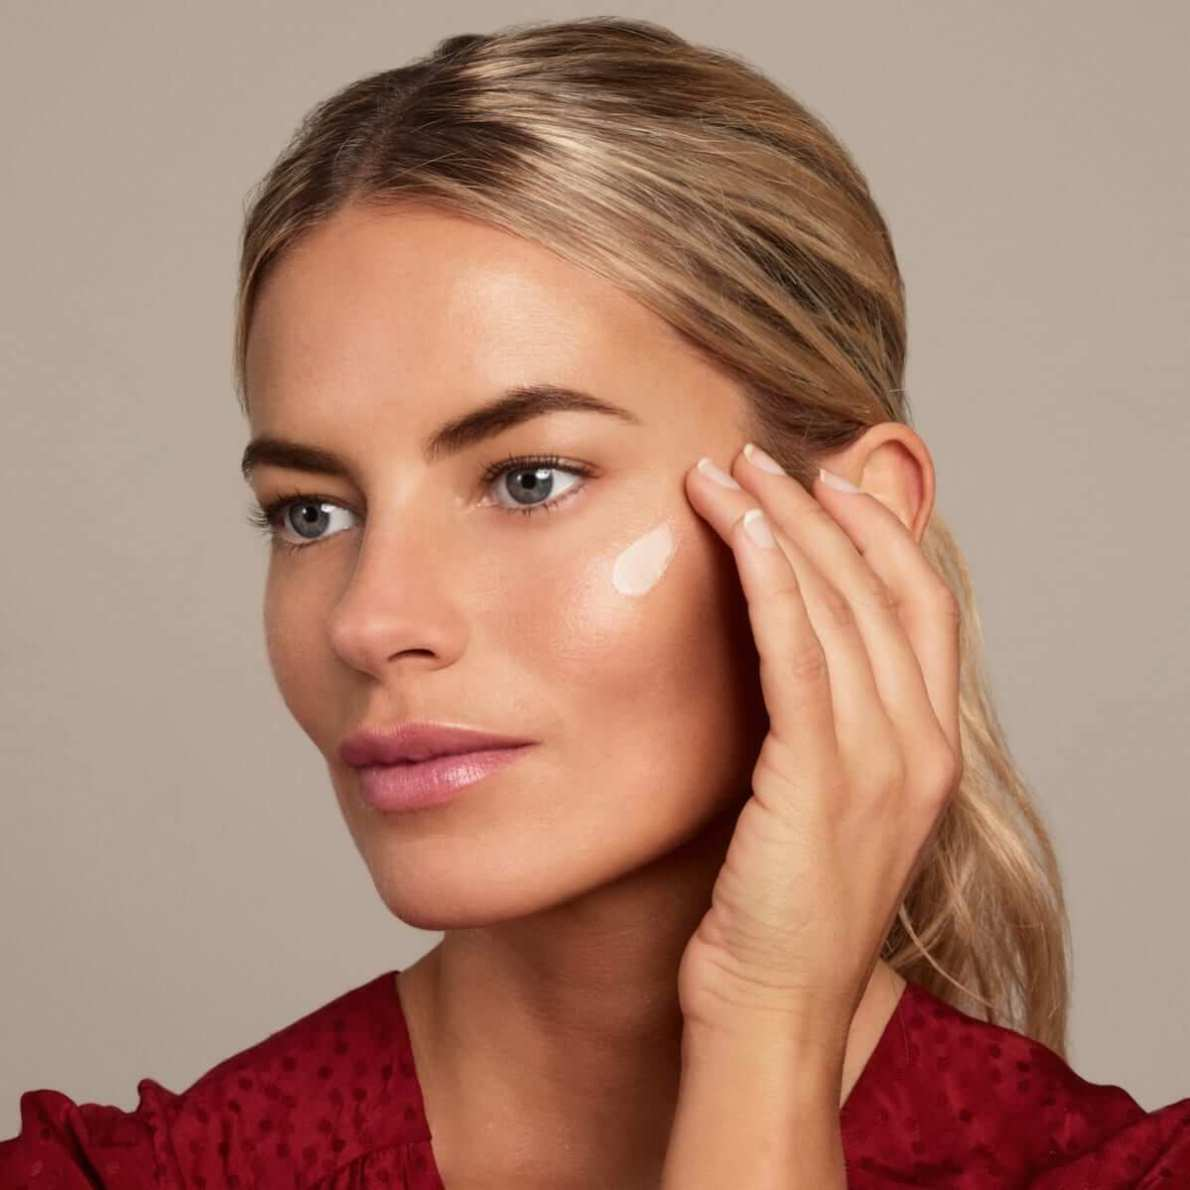 2020 Beauty Trends to Get Excited About